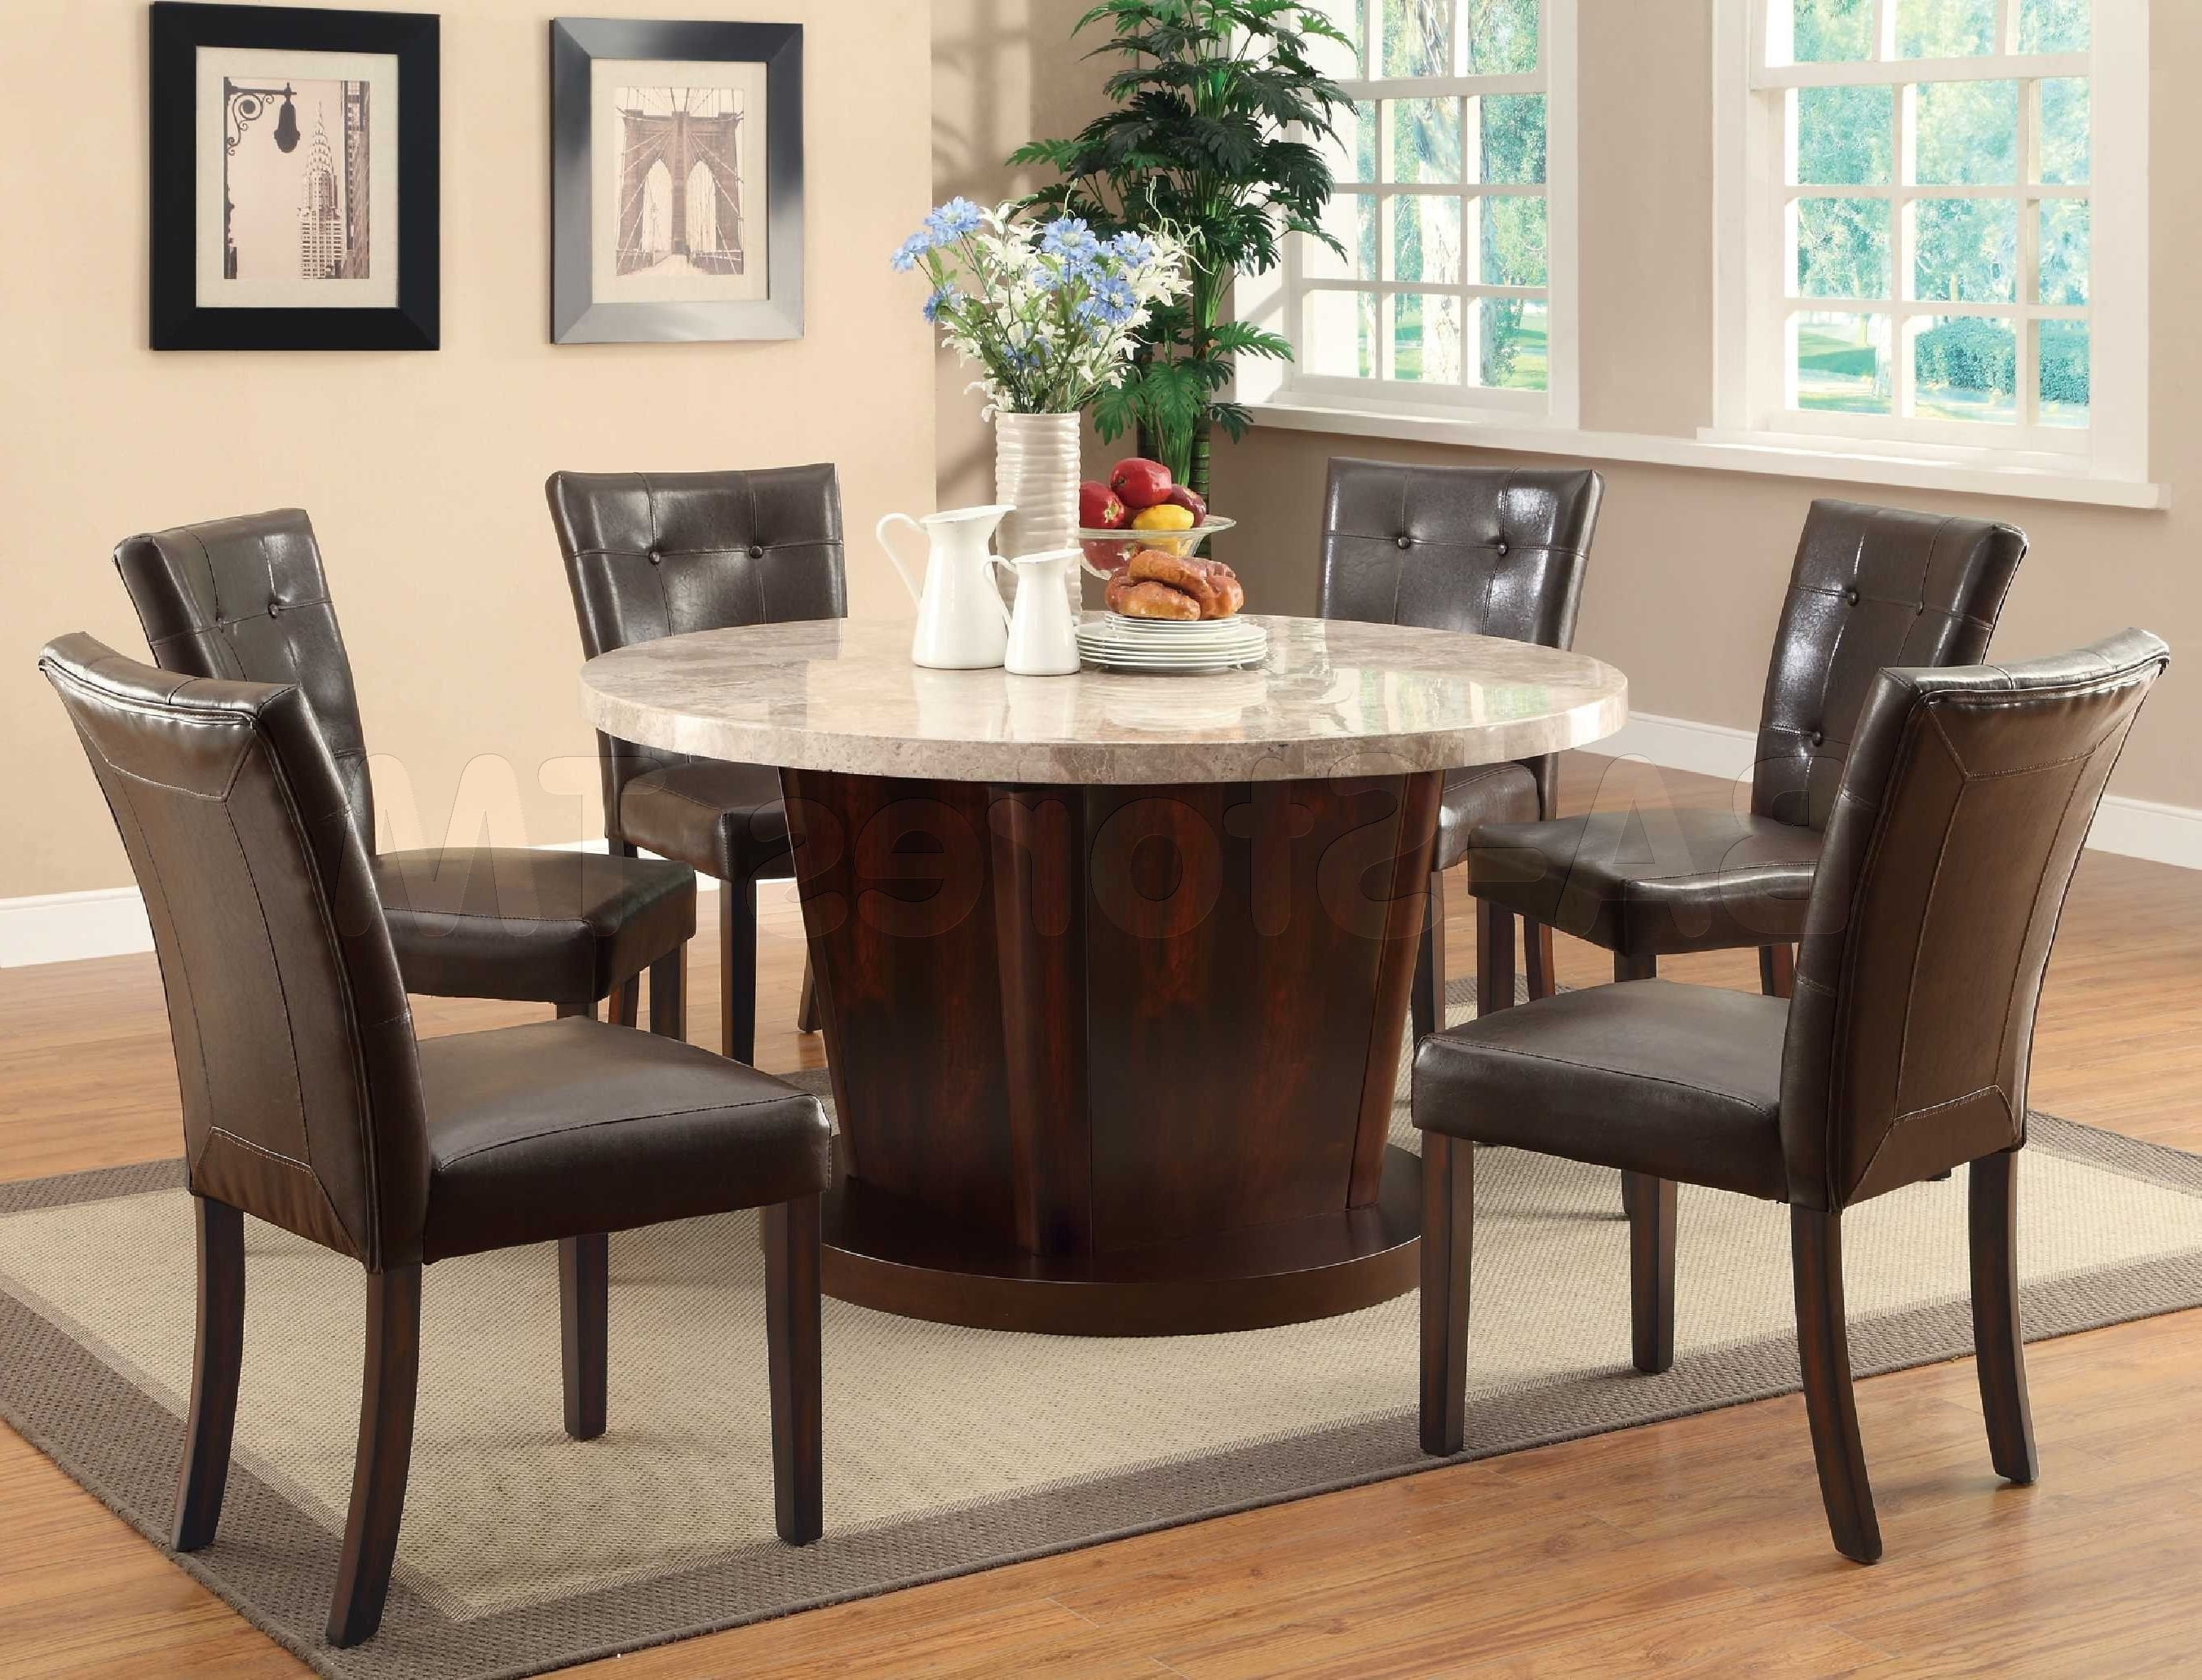 Best And Newest Candice Ii 6 Piece Extension Rectangle Dining Sets Regarding Decorating Nice Dining Table Set 6 Seater And House Beautiful Rooms (View 24 of 25)